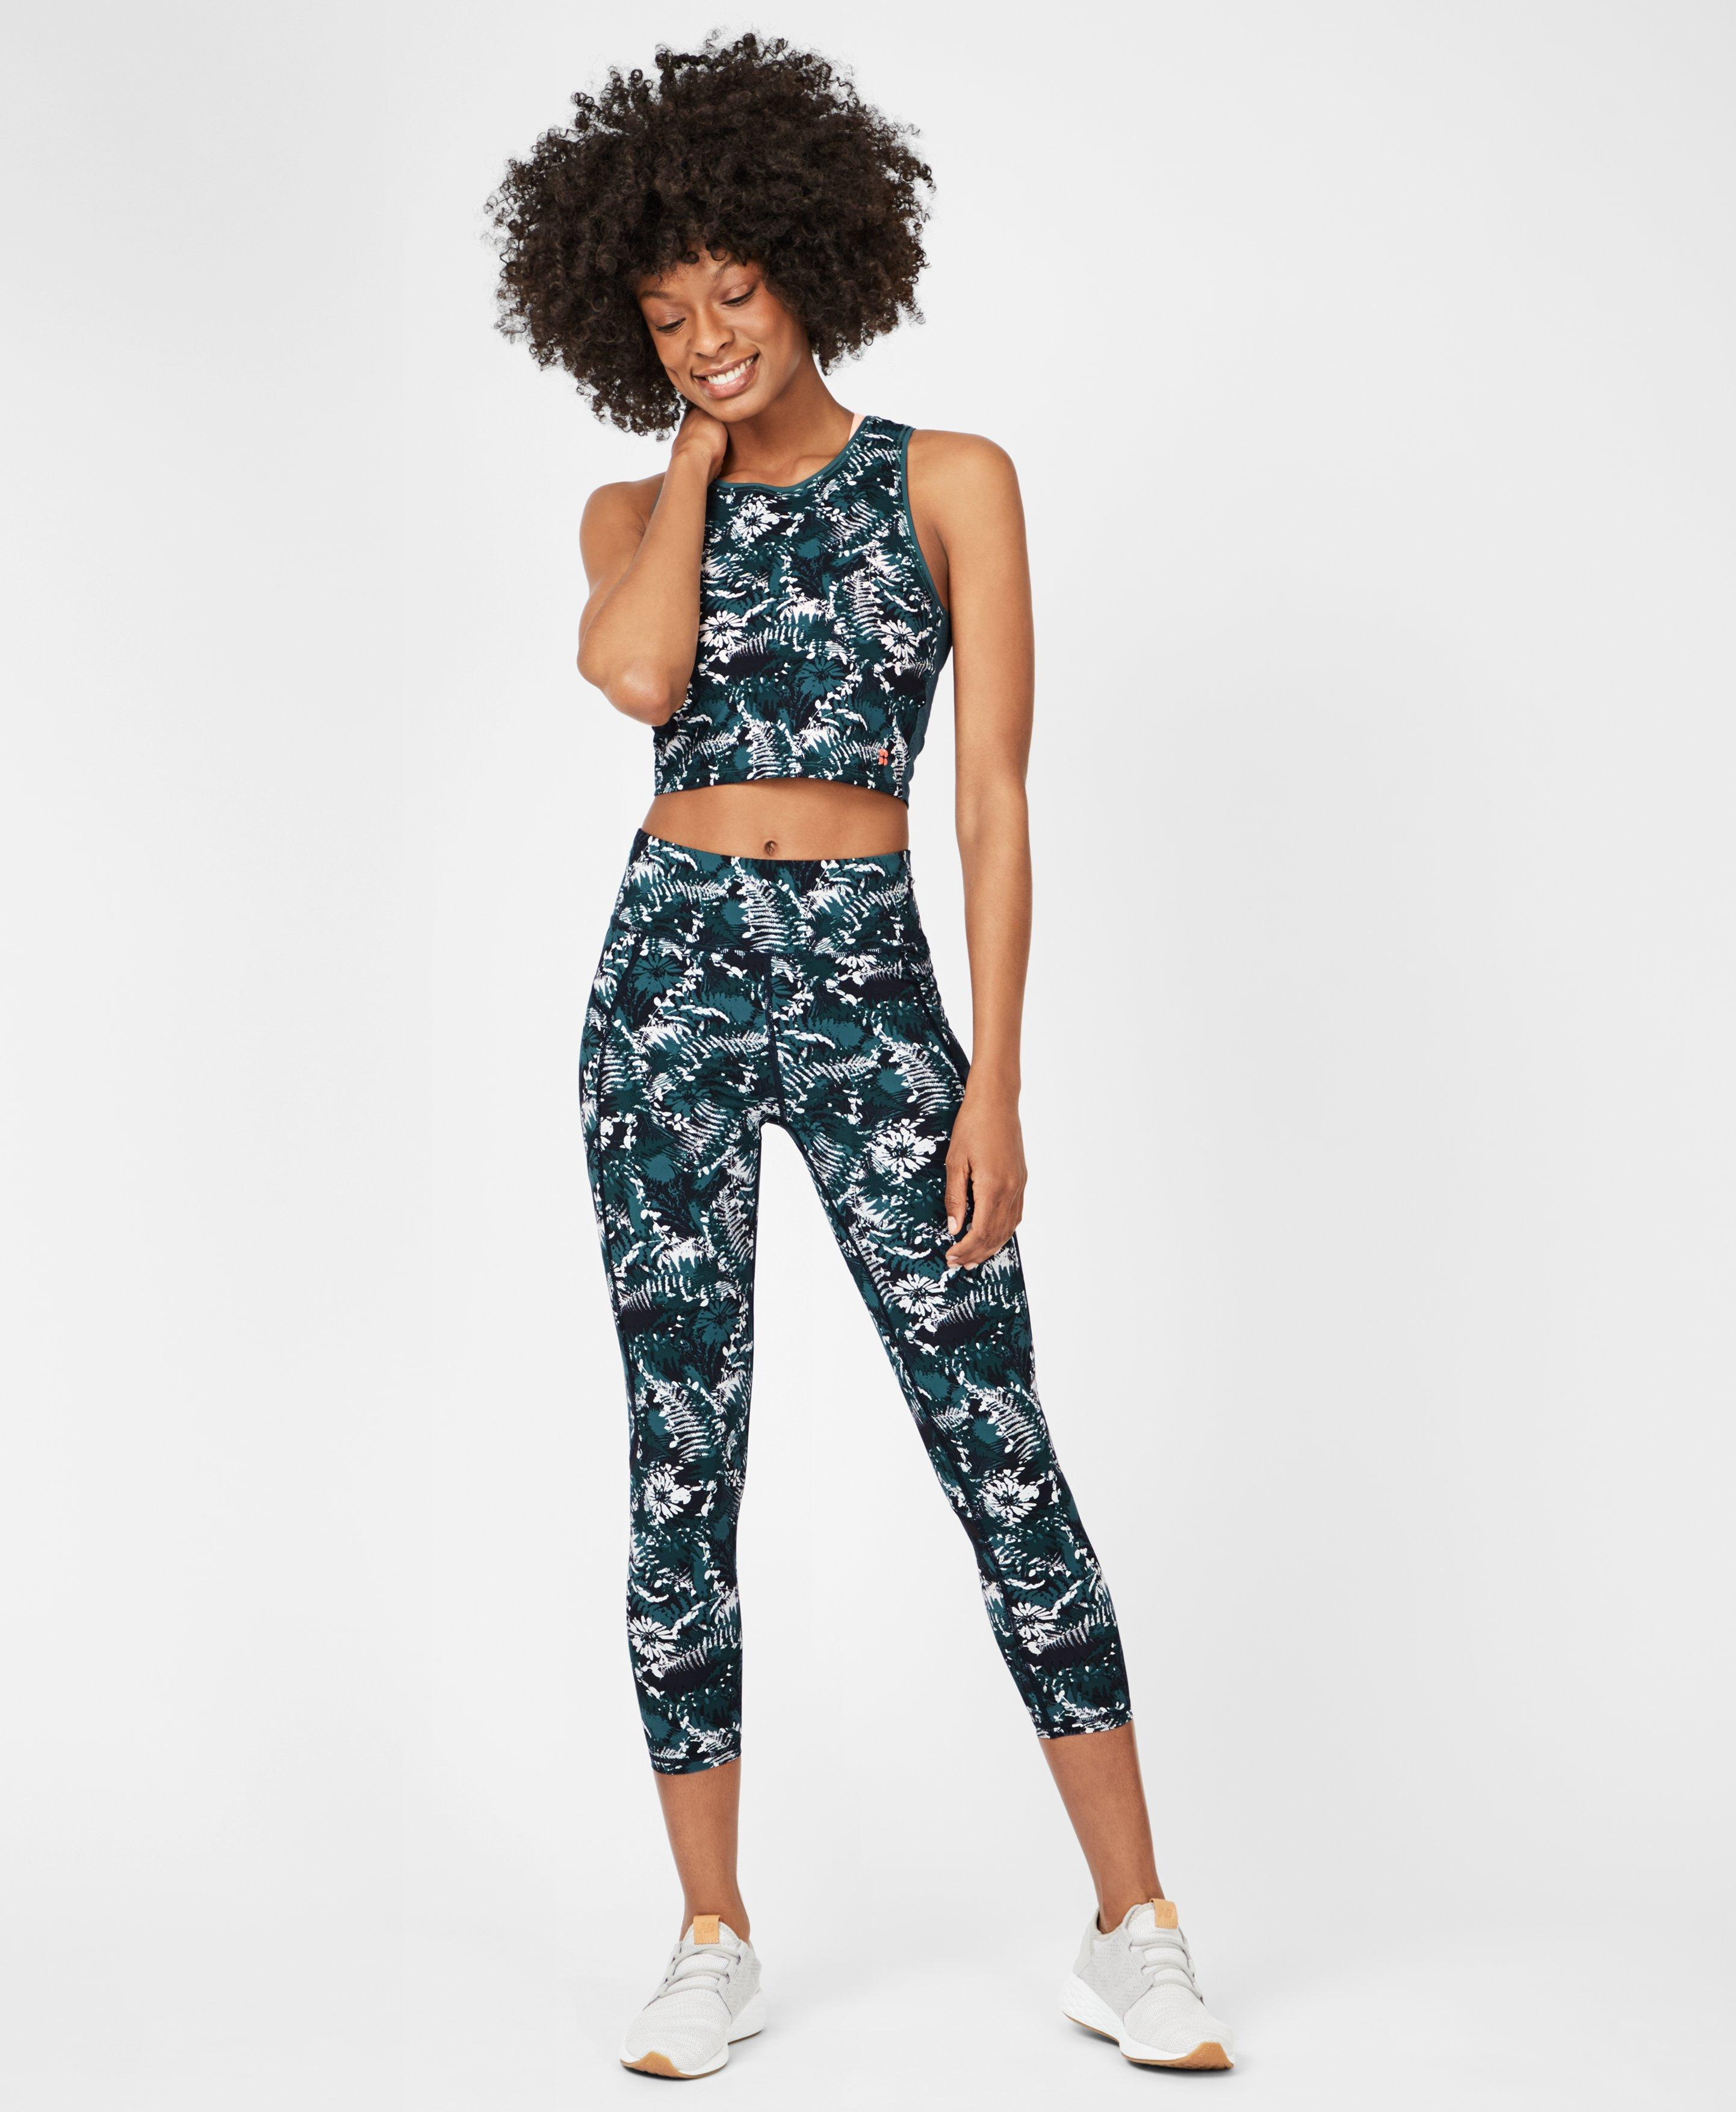 Zero Gravity Stargazer Set,  | Sweaty Betty